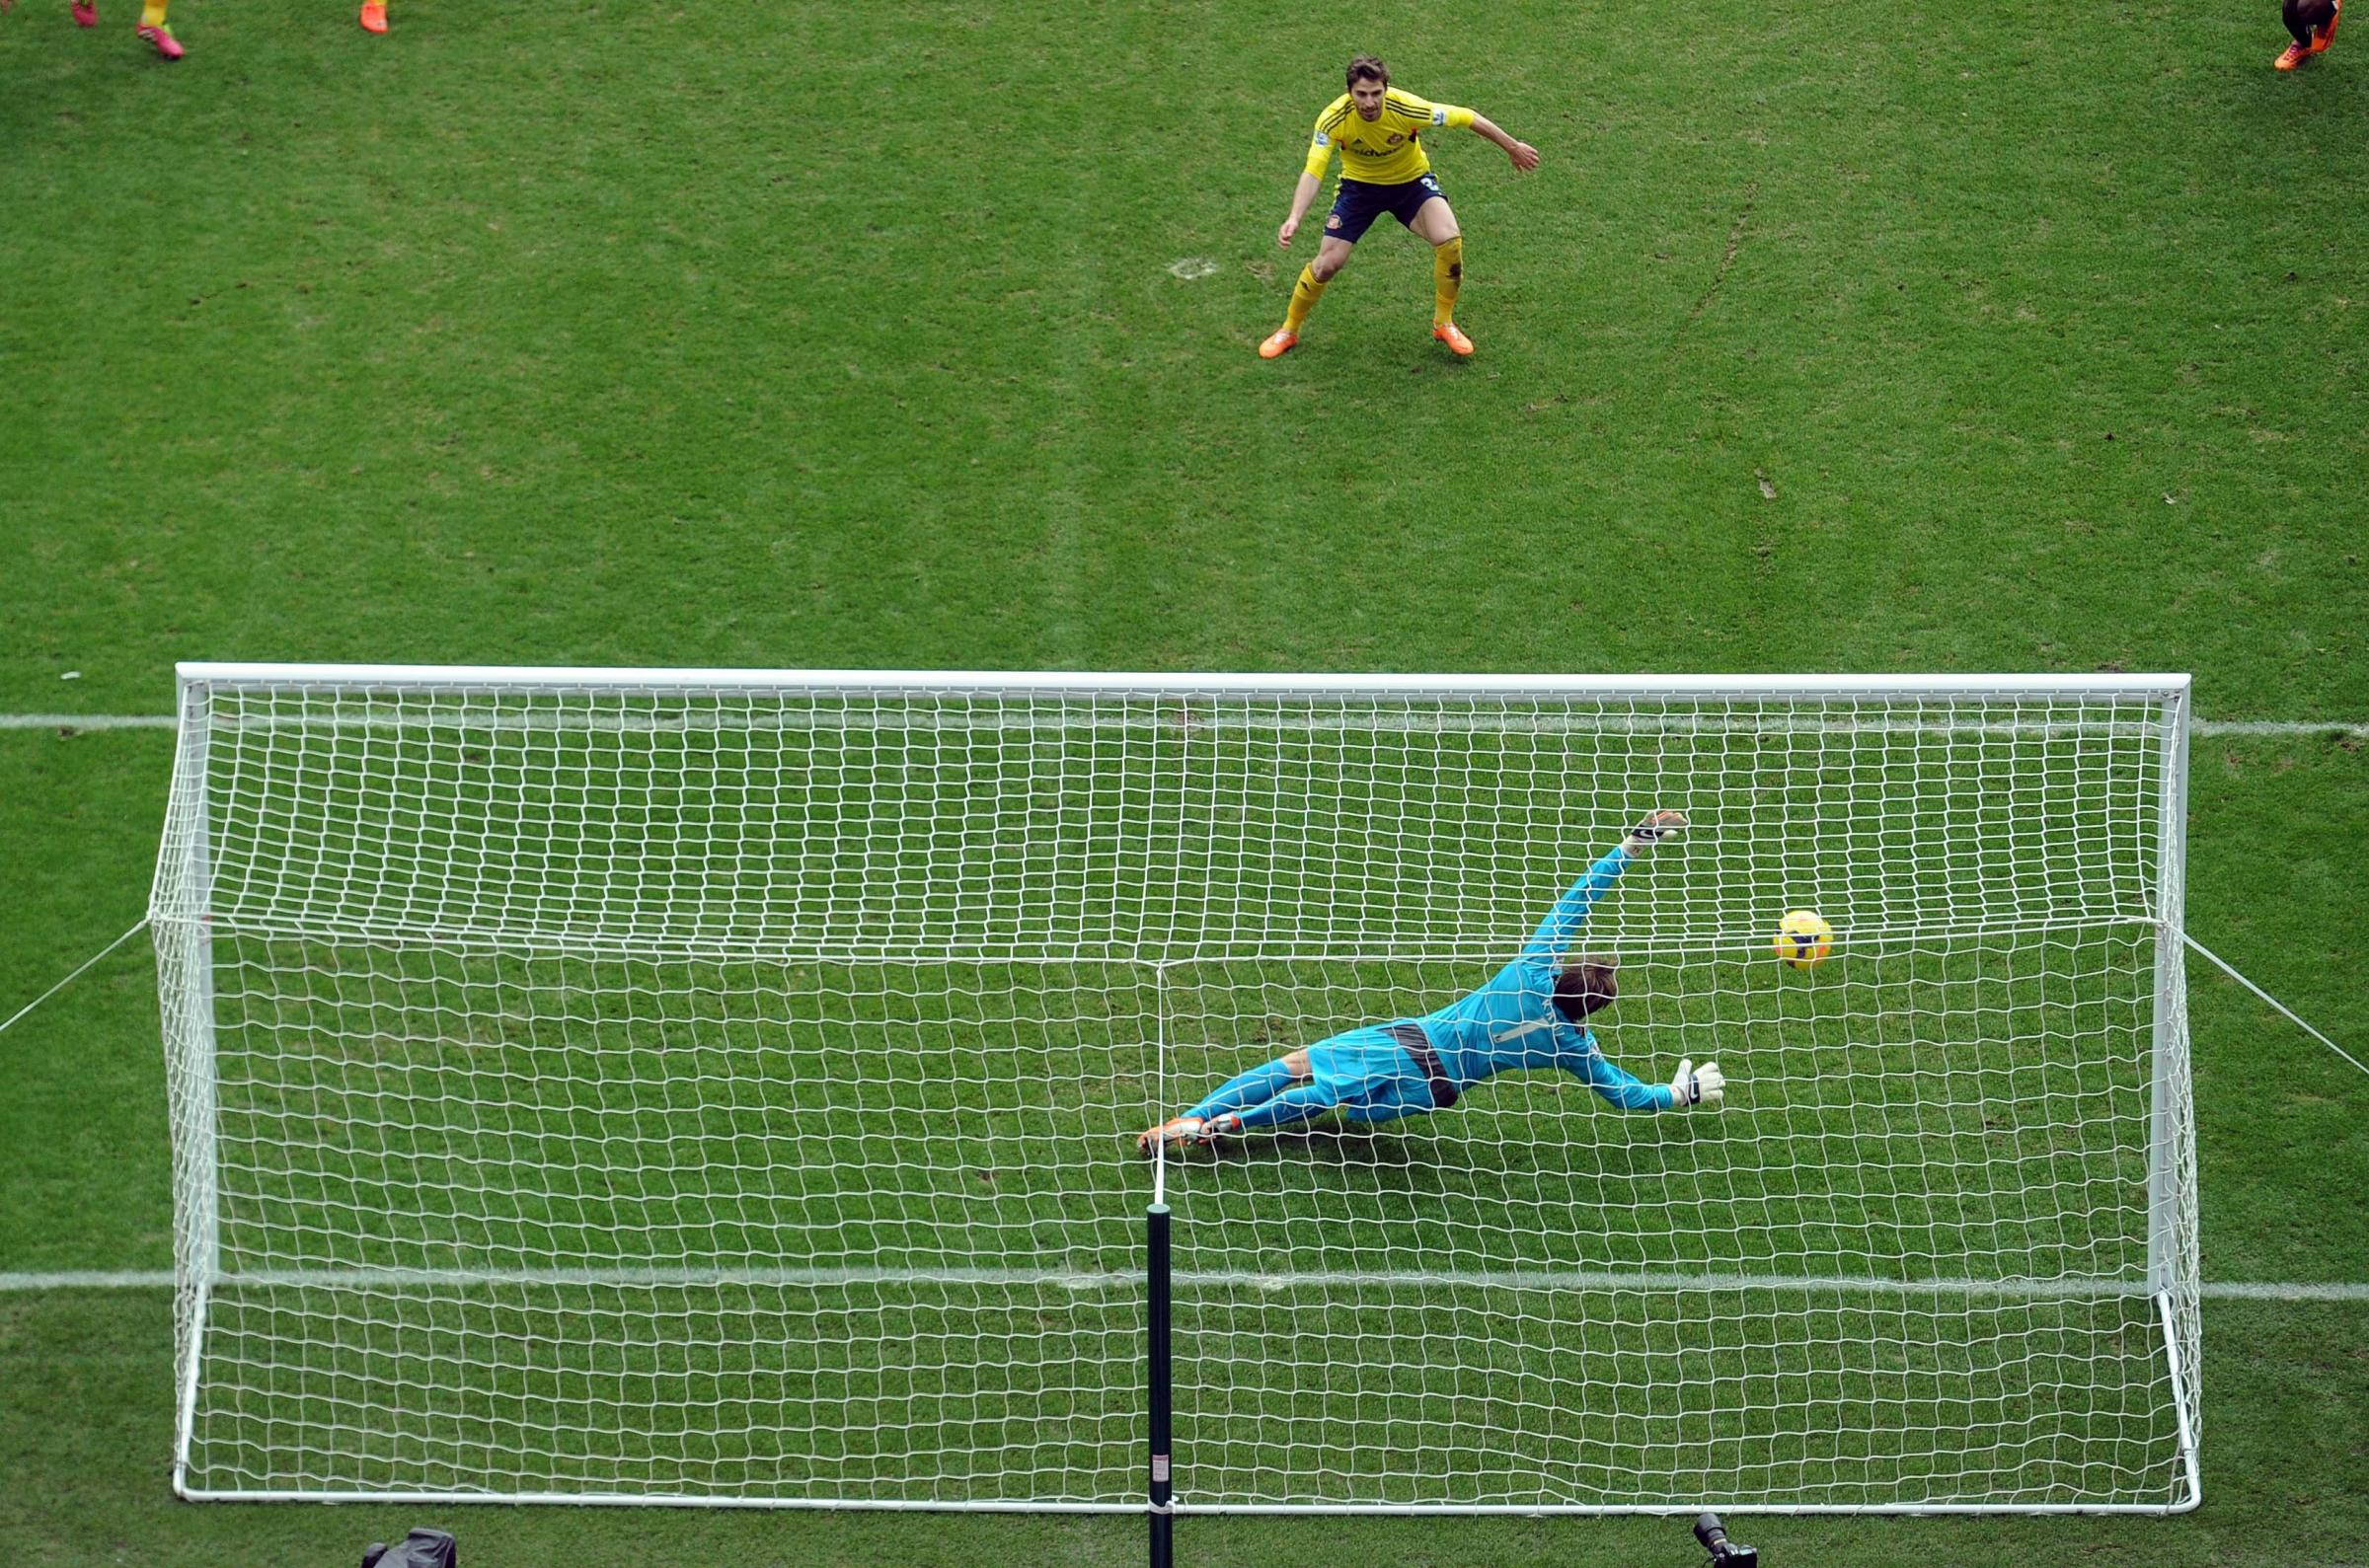 DESPAIRING DIVE: Newcastle goalkeeper Tim Krul can't prevent Fabio Borini putting Sunderland ahead from the penalty spot on Saturday